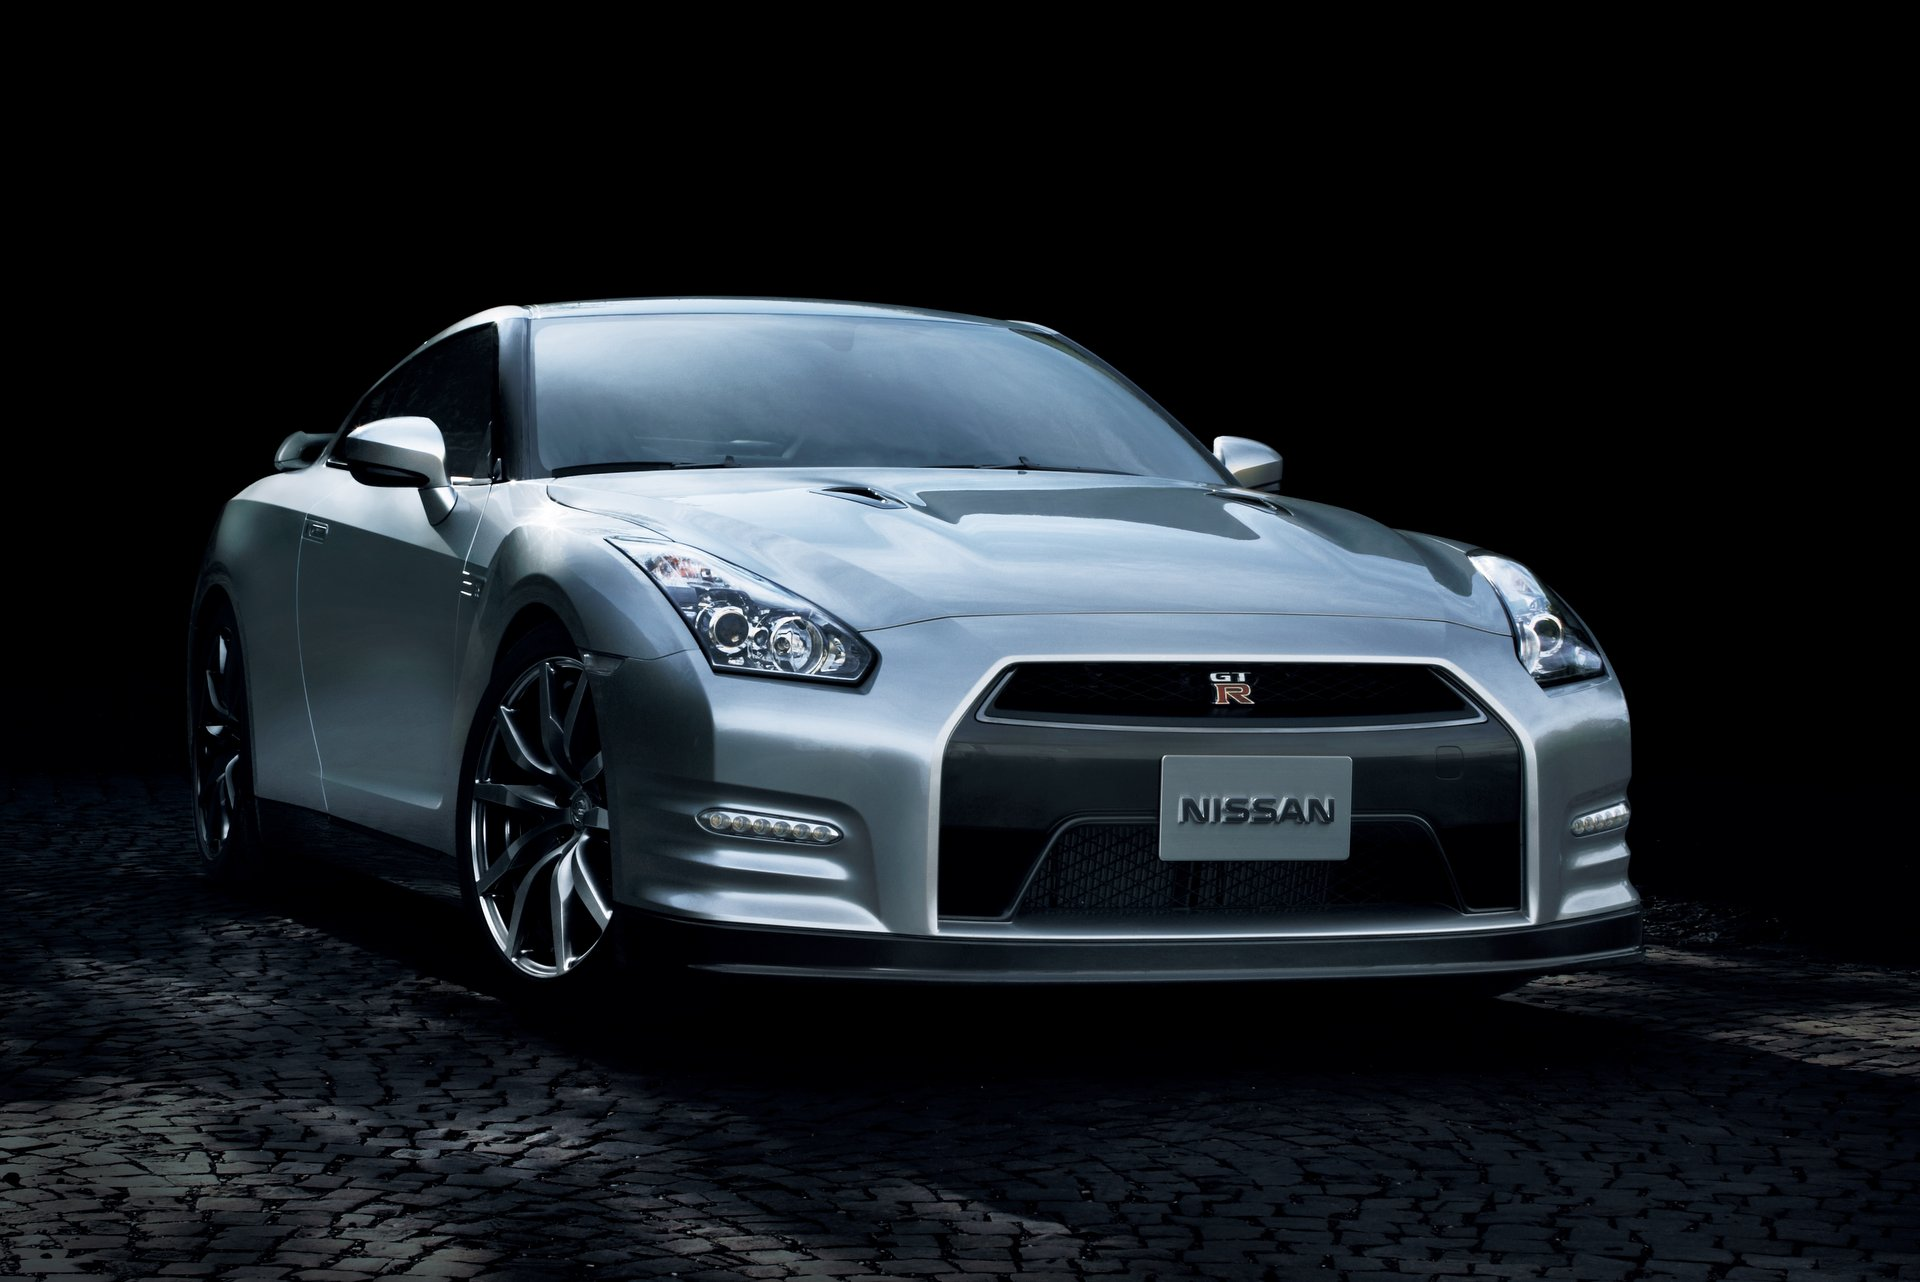 2014 Nissan GT-R High Resolution Wallpaper Free